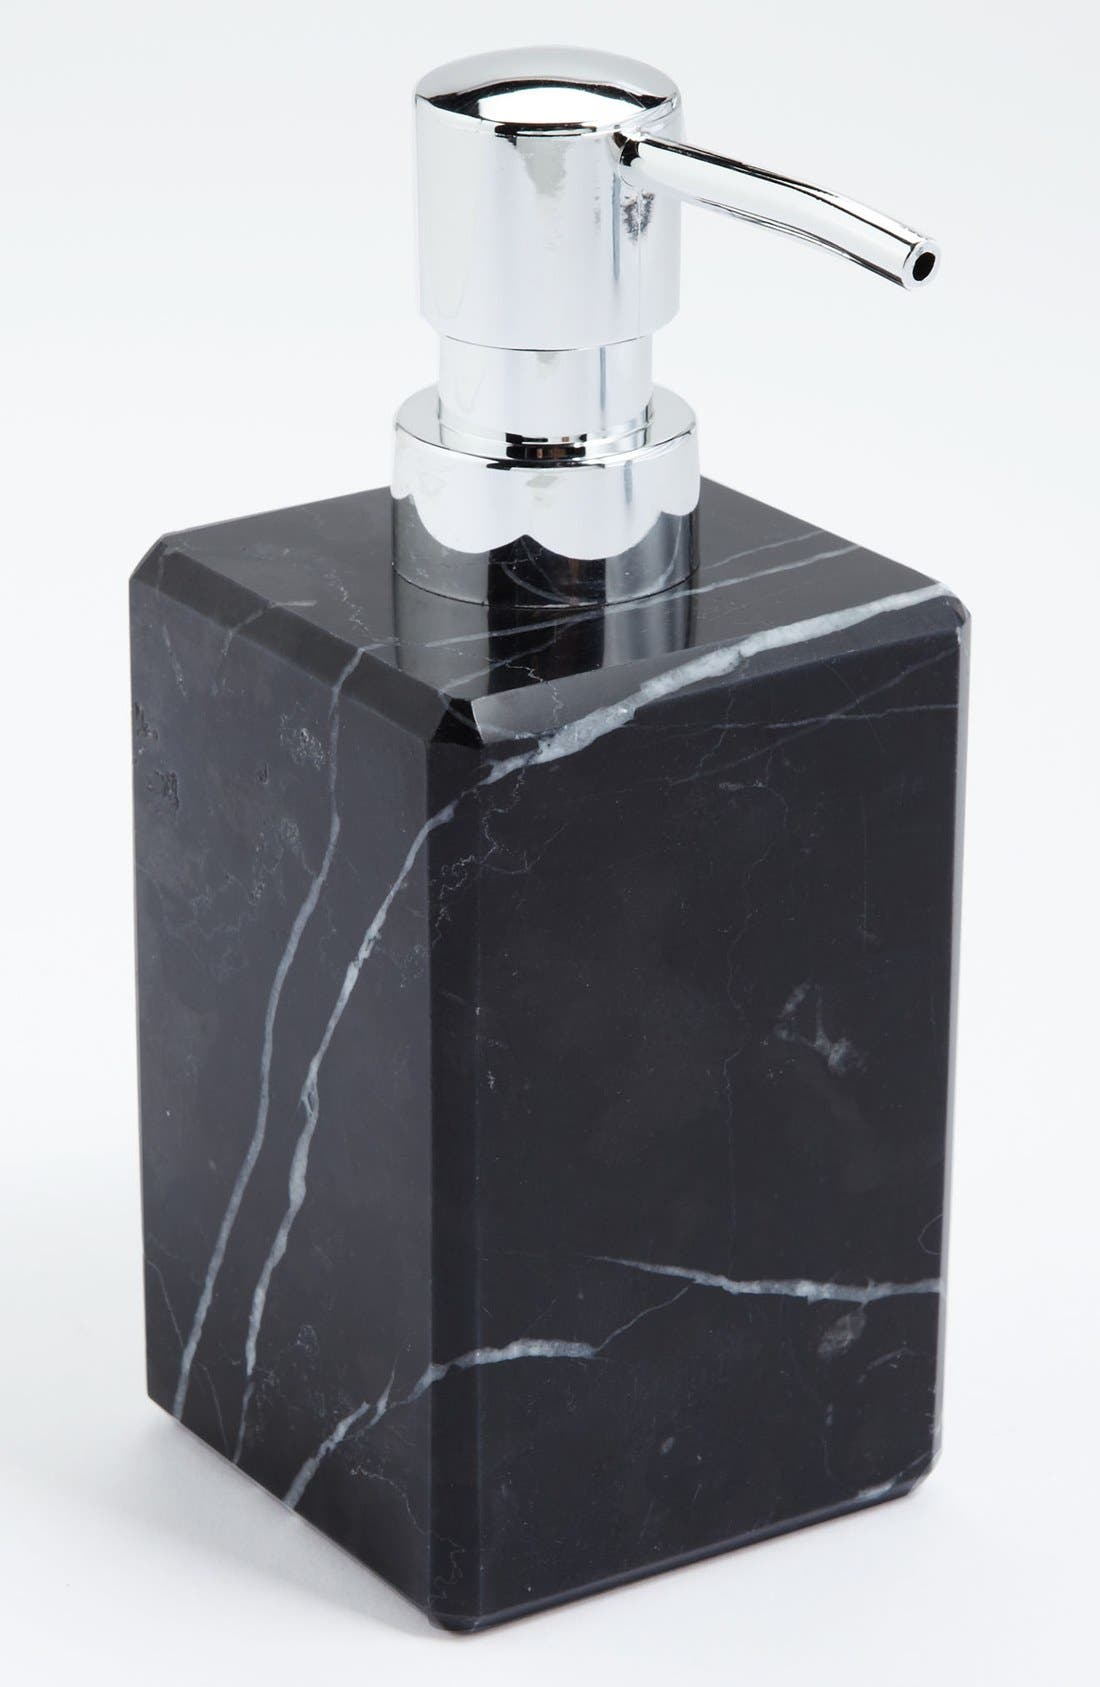 Main Image - Waterworks Studio 'Luna' Black Marble Soap Dispenser (Online Only)